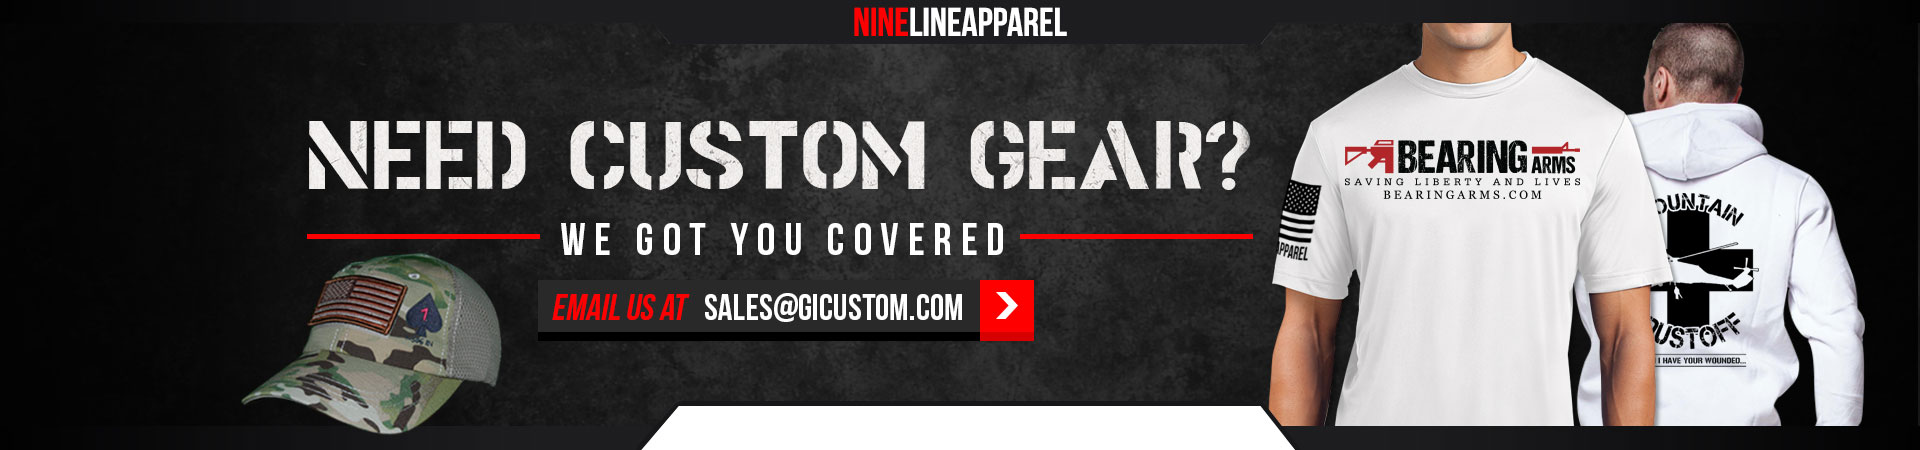 Click here if interested in creating a Custom T-shirt